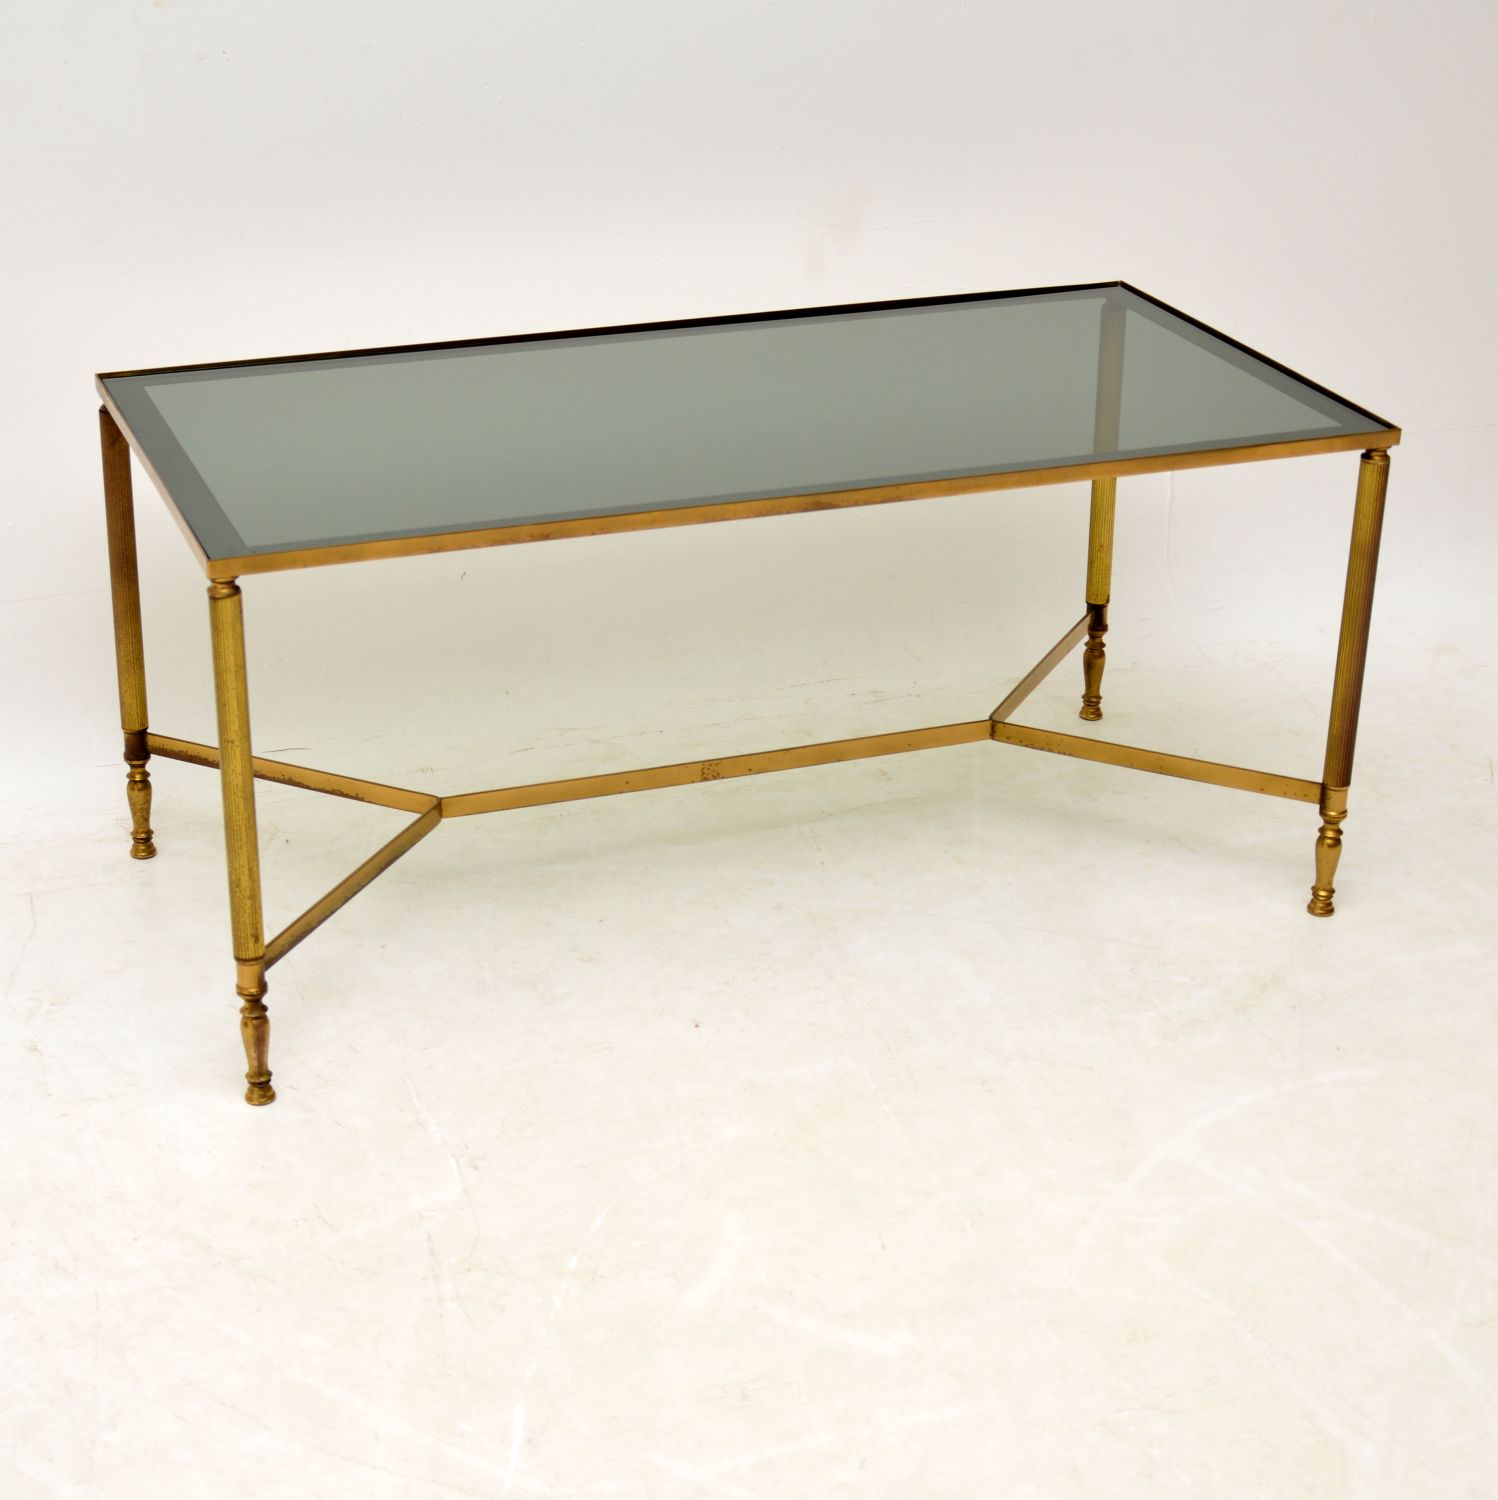 1950s Vintage French Brass Glass Coffee Table 956 La217898 Loveantiques Com